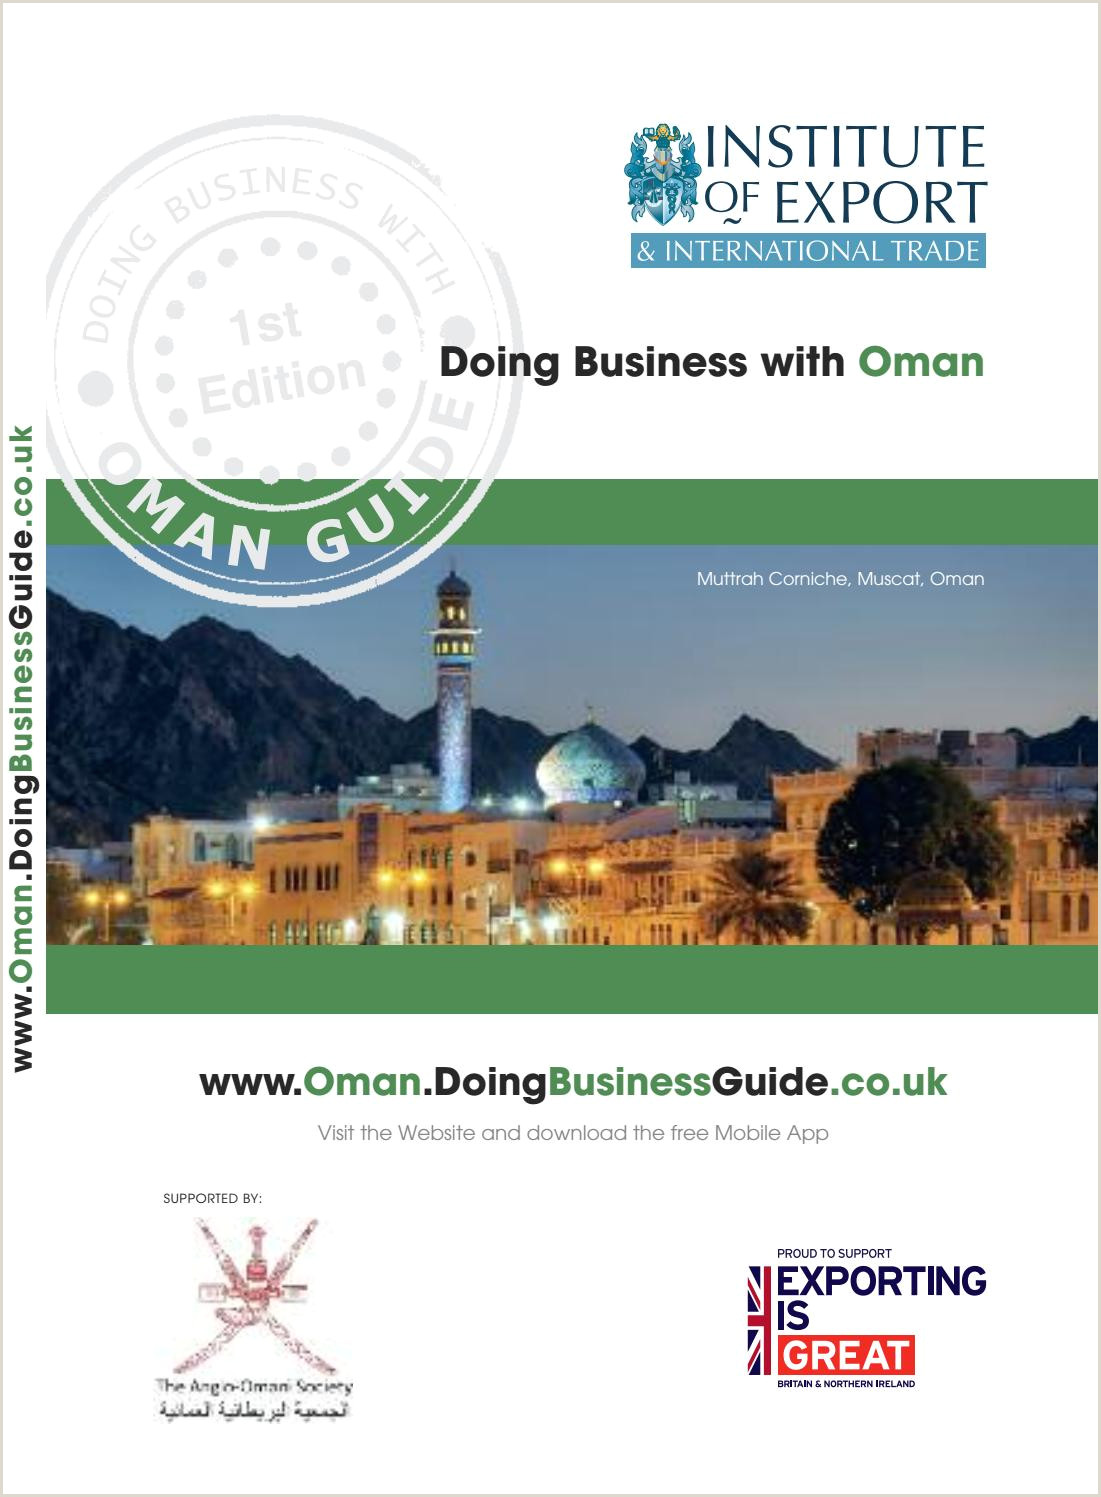 Unique Medi Spa Business Cards Doing Business With Oman Guide By Doing Business Guides Issuu